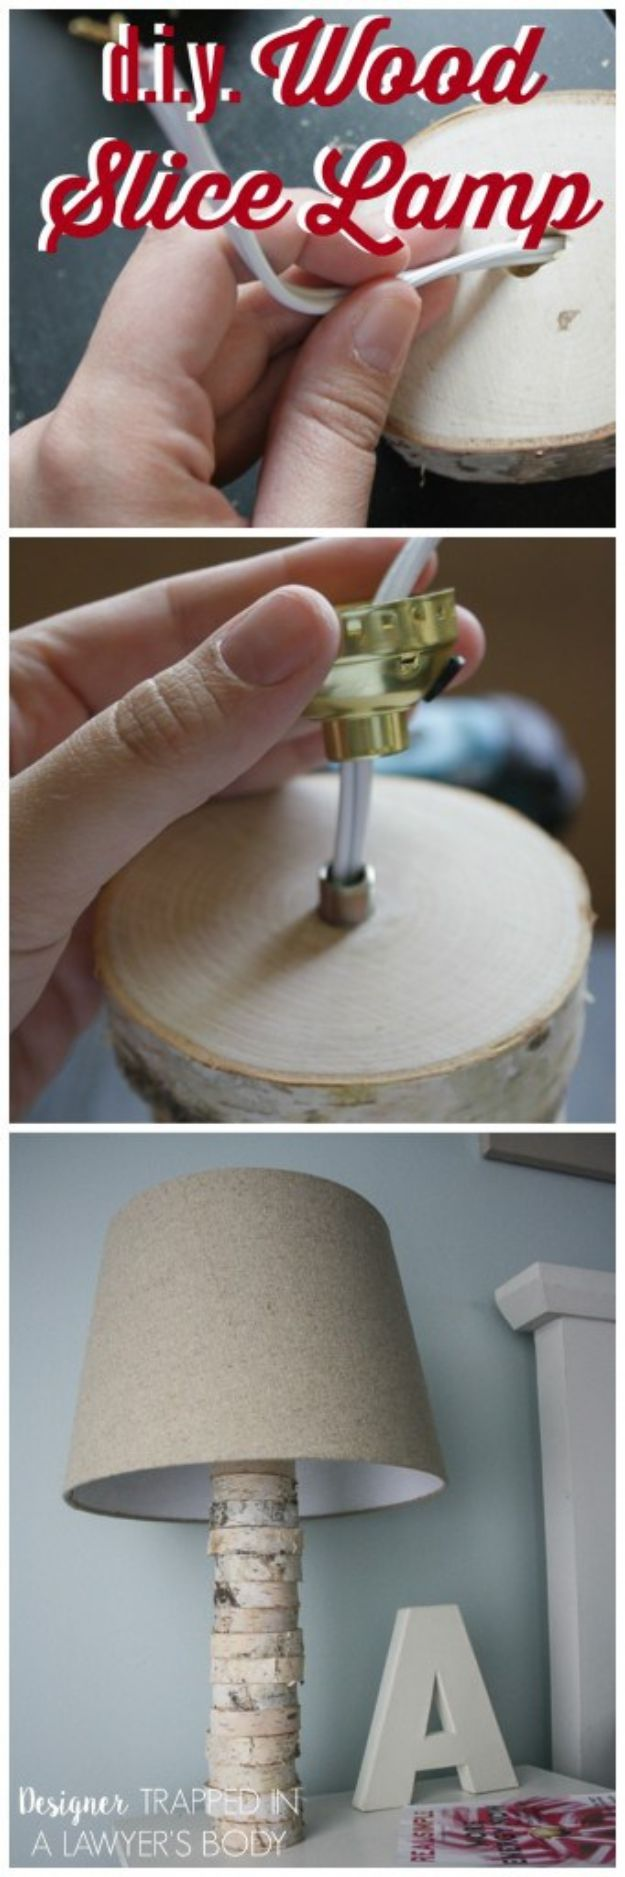 DIY Lighting Ideas and Cool DIY Light Projects for the Home - DIY Stacked Wood Lamp - Easy DIY Ideas for Chandeliers, lights, lamps, awesome pendants and creative hanging fixtures, complete with tutorials with instructions. Cheap do it yourself lighting tutorials for indoor - bedroom, living room, bathroom, kitchen DIY Projects and Crafts for Women and Men